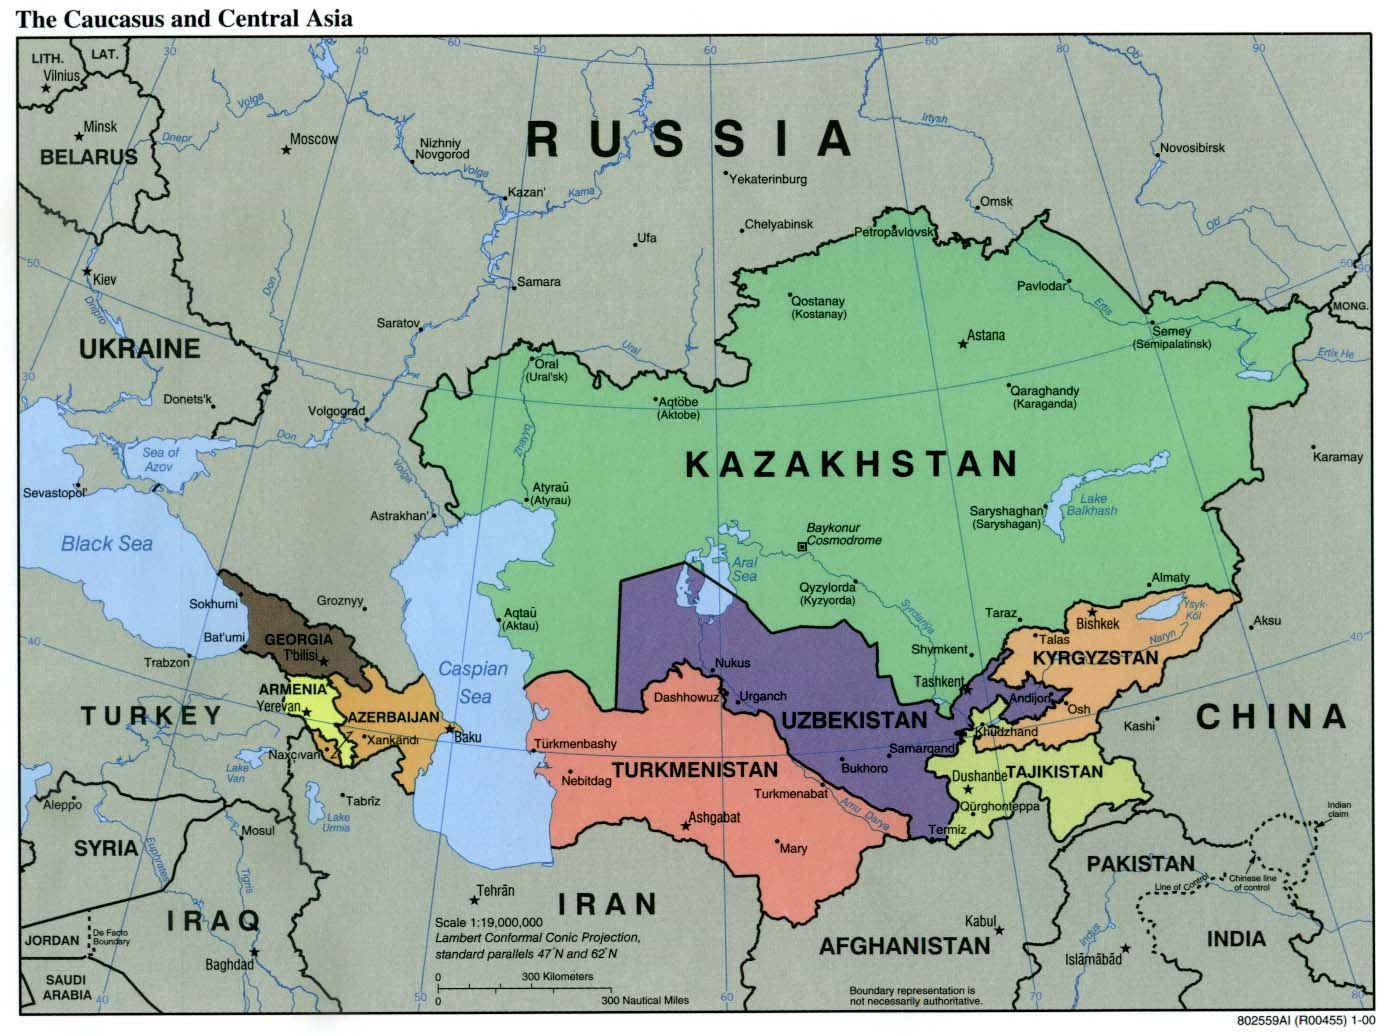 Caucasus and Central Asia Political Map 2000